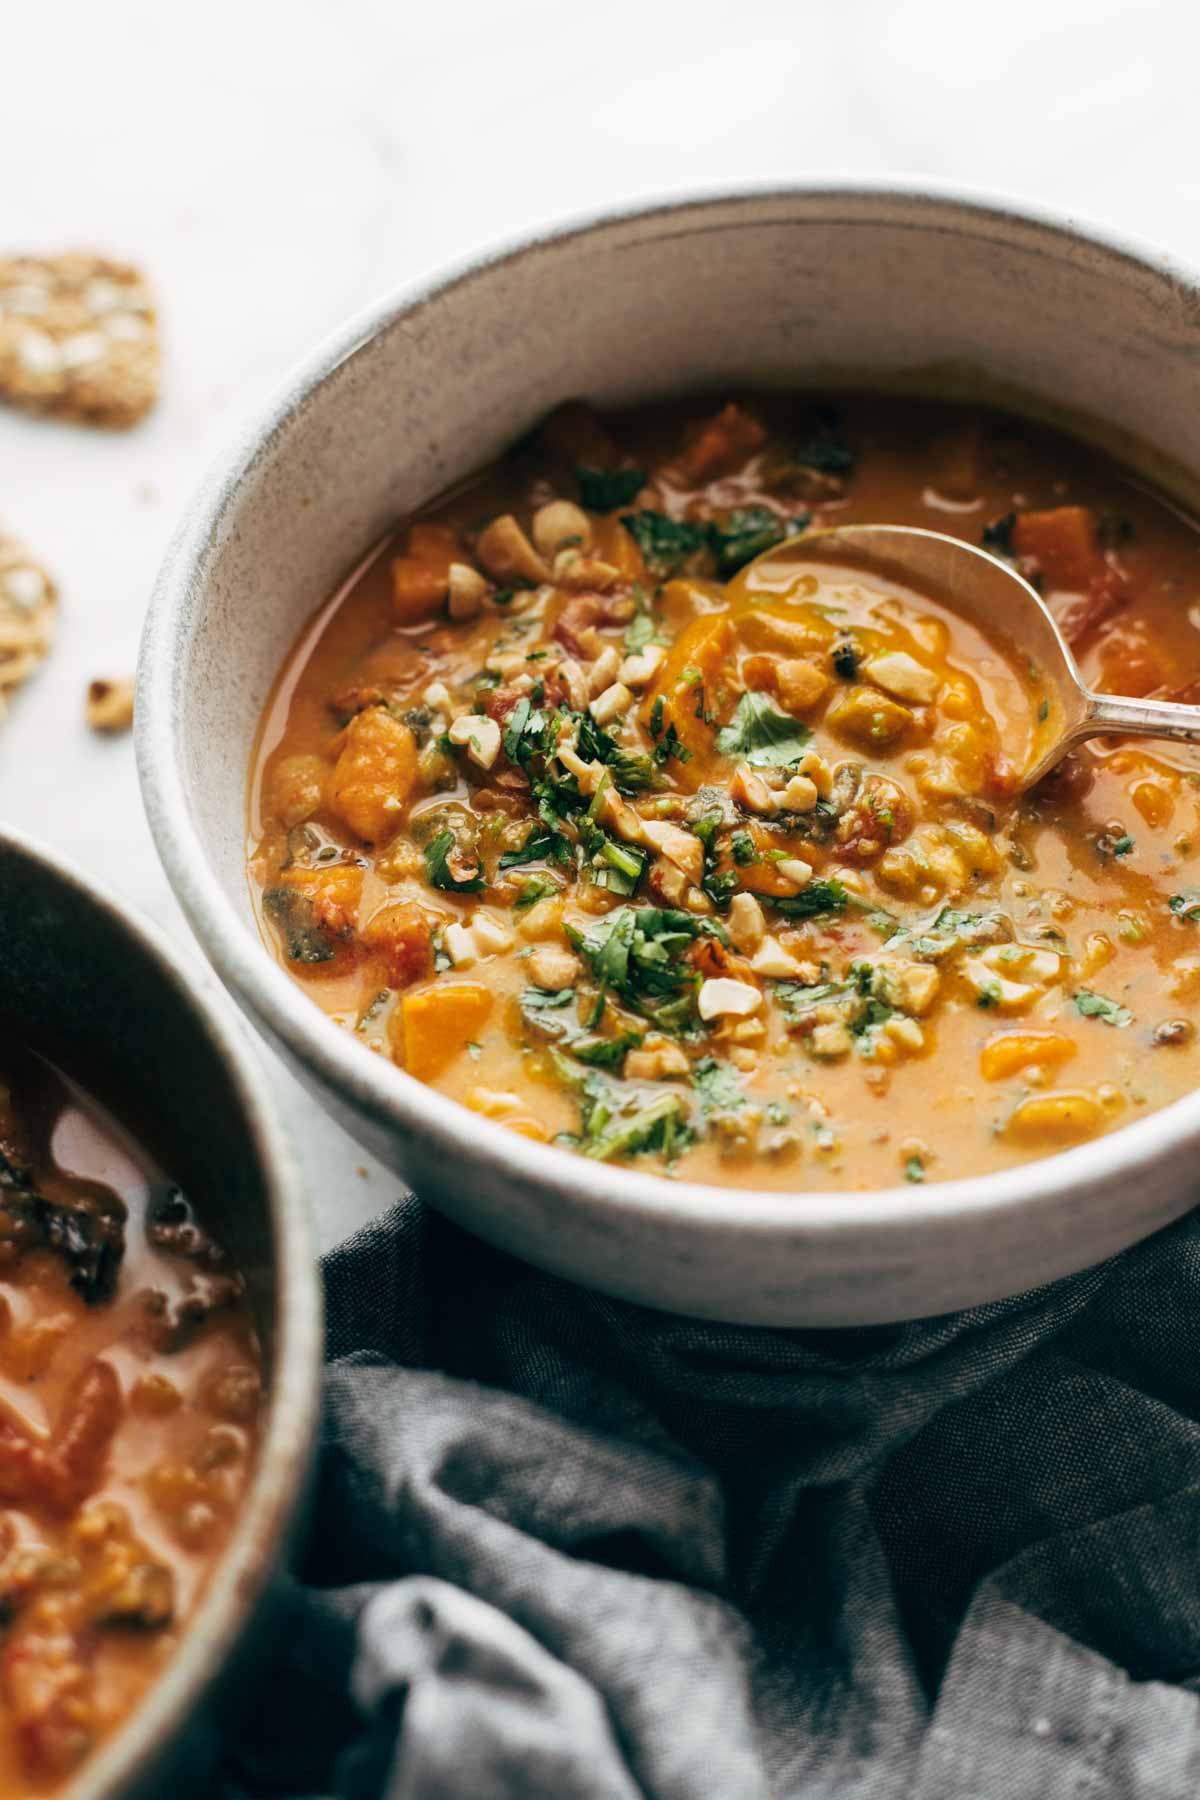 Skinny Instant Pot recipes: Spicy Peanut Soup with Sweet Potatoes and Kale | Pinch of Yum